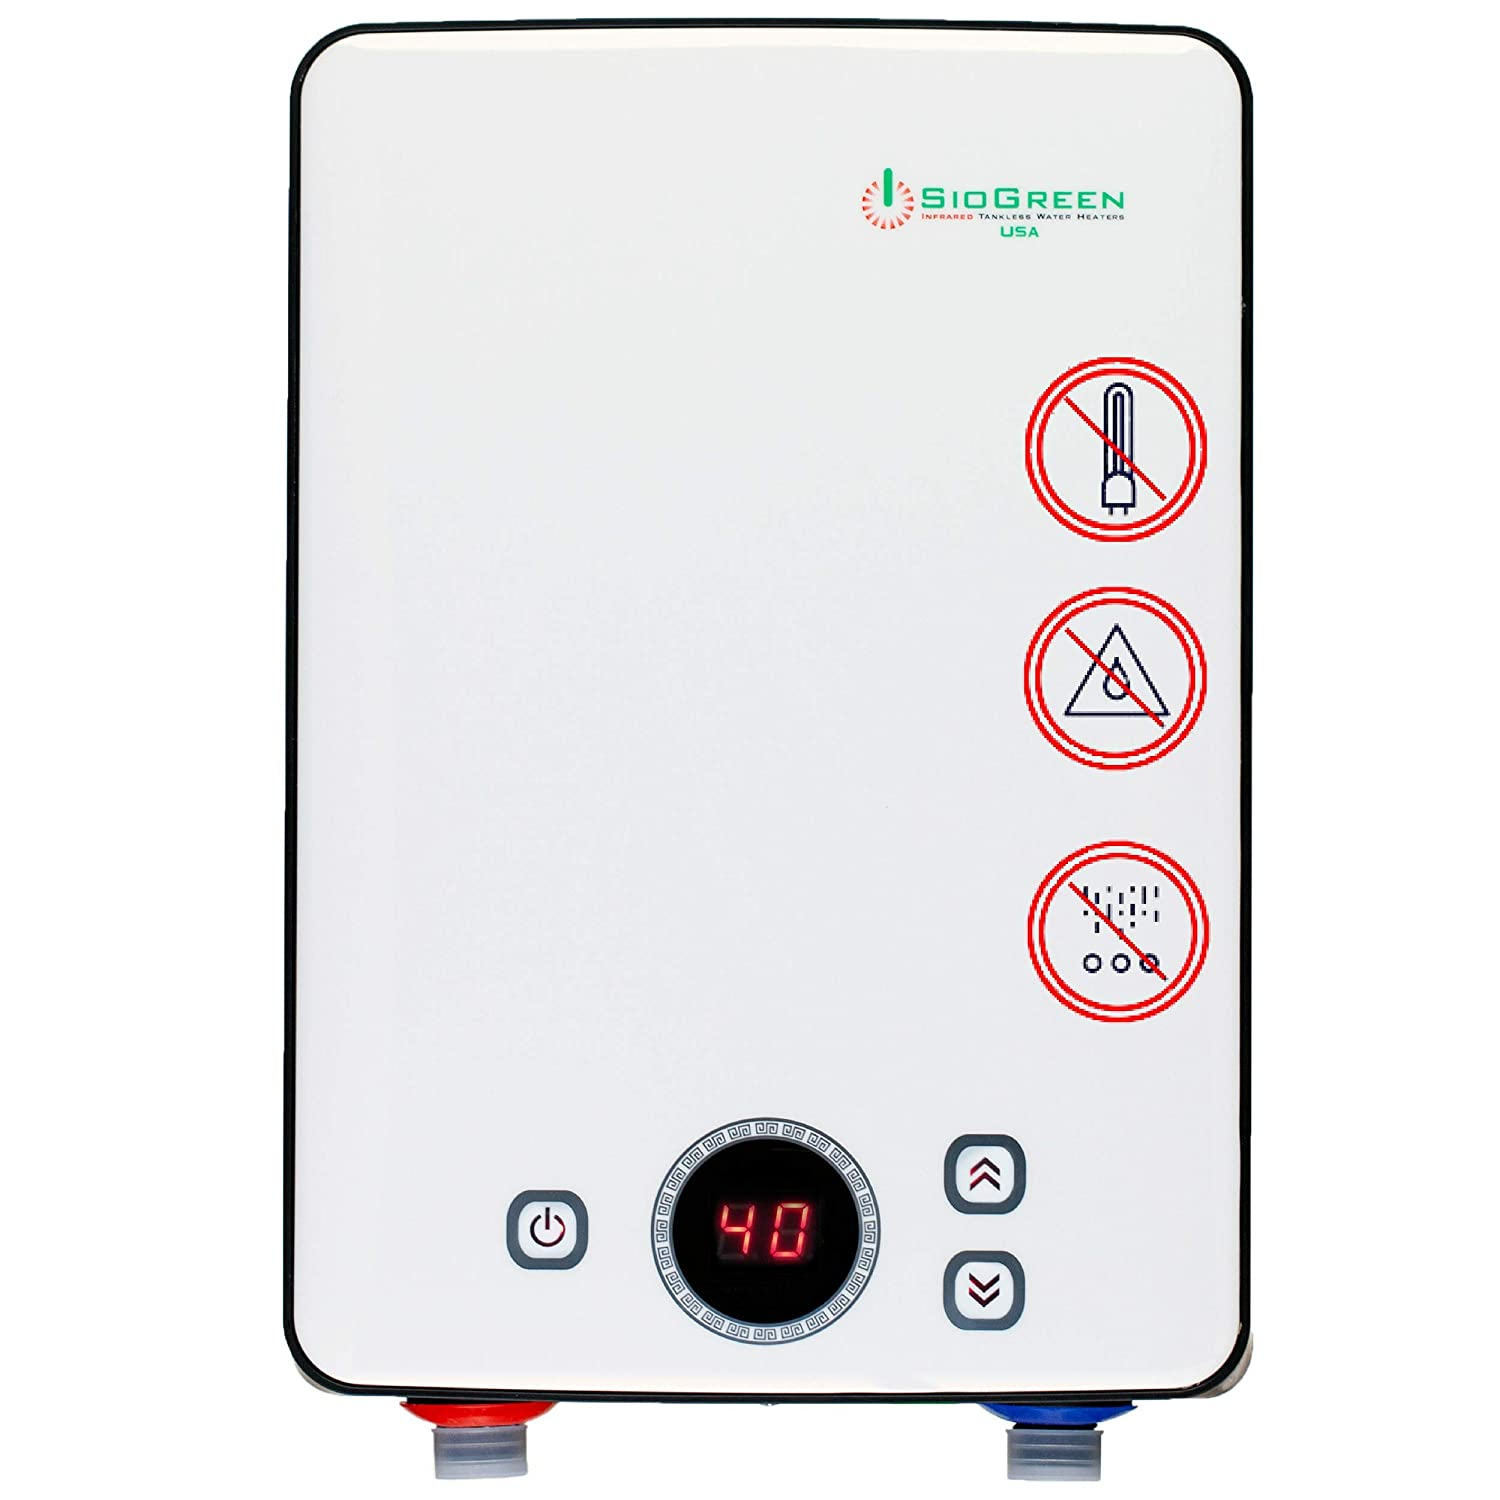 Sio Green Ir30 Pou Electric Tankless Water Heater Infrared Tank Wiring Zones Bathroom Less Instant Hot Cost Effective Corrosion Free No Lime Scale Algae